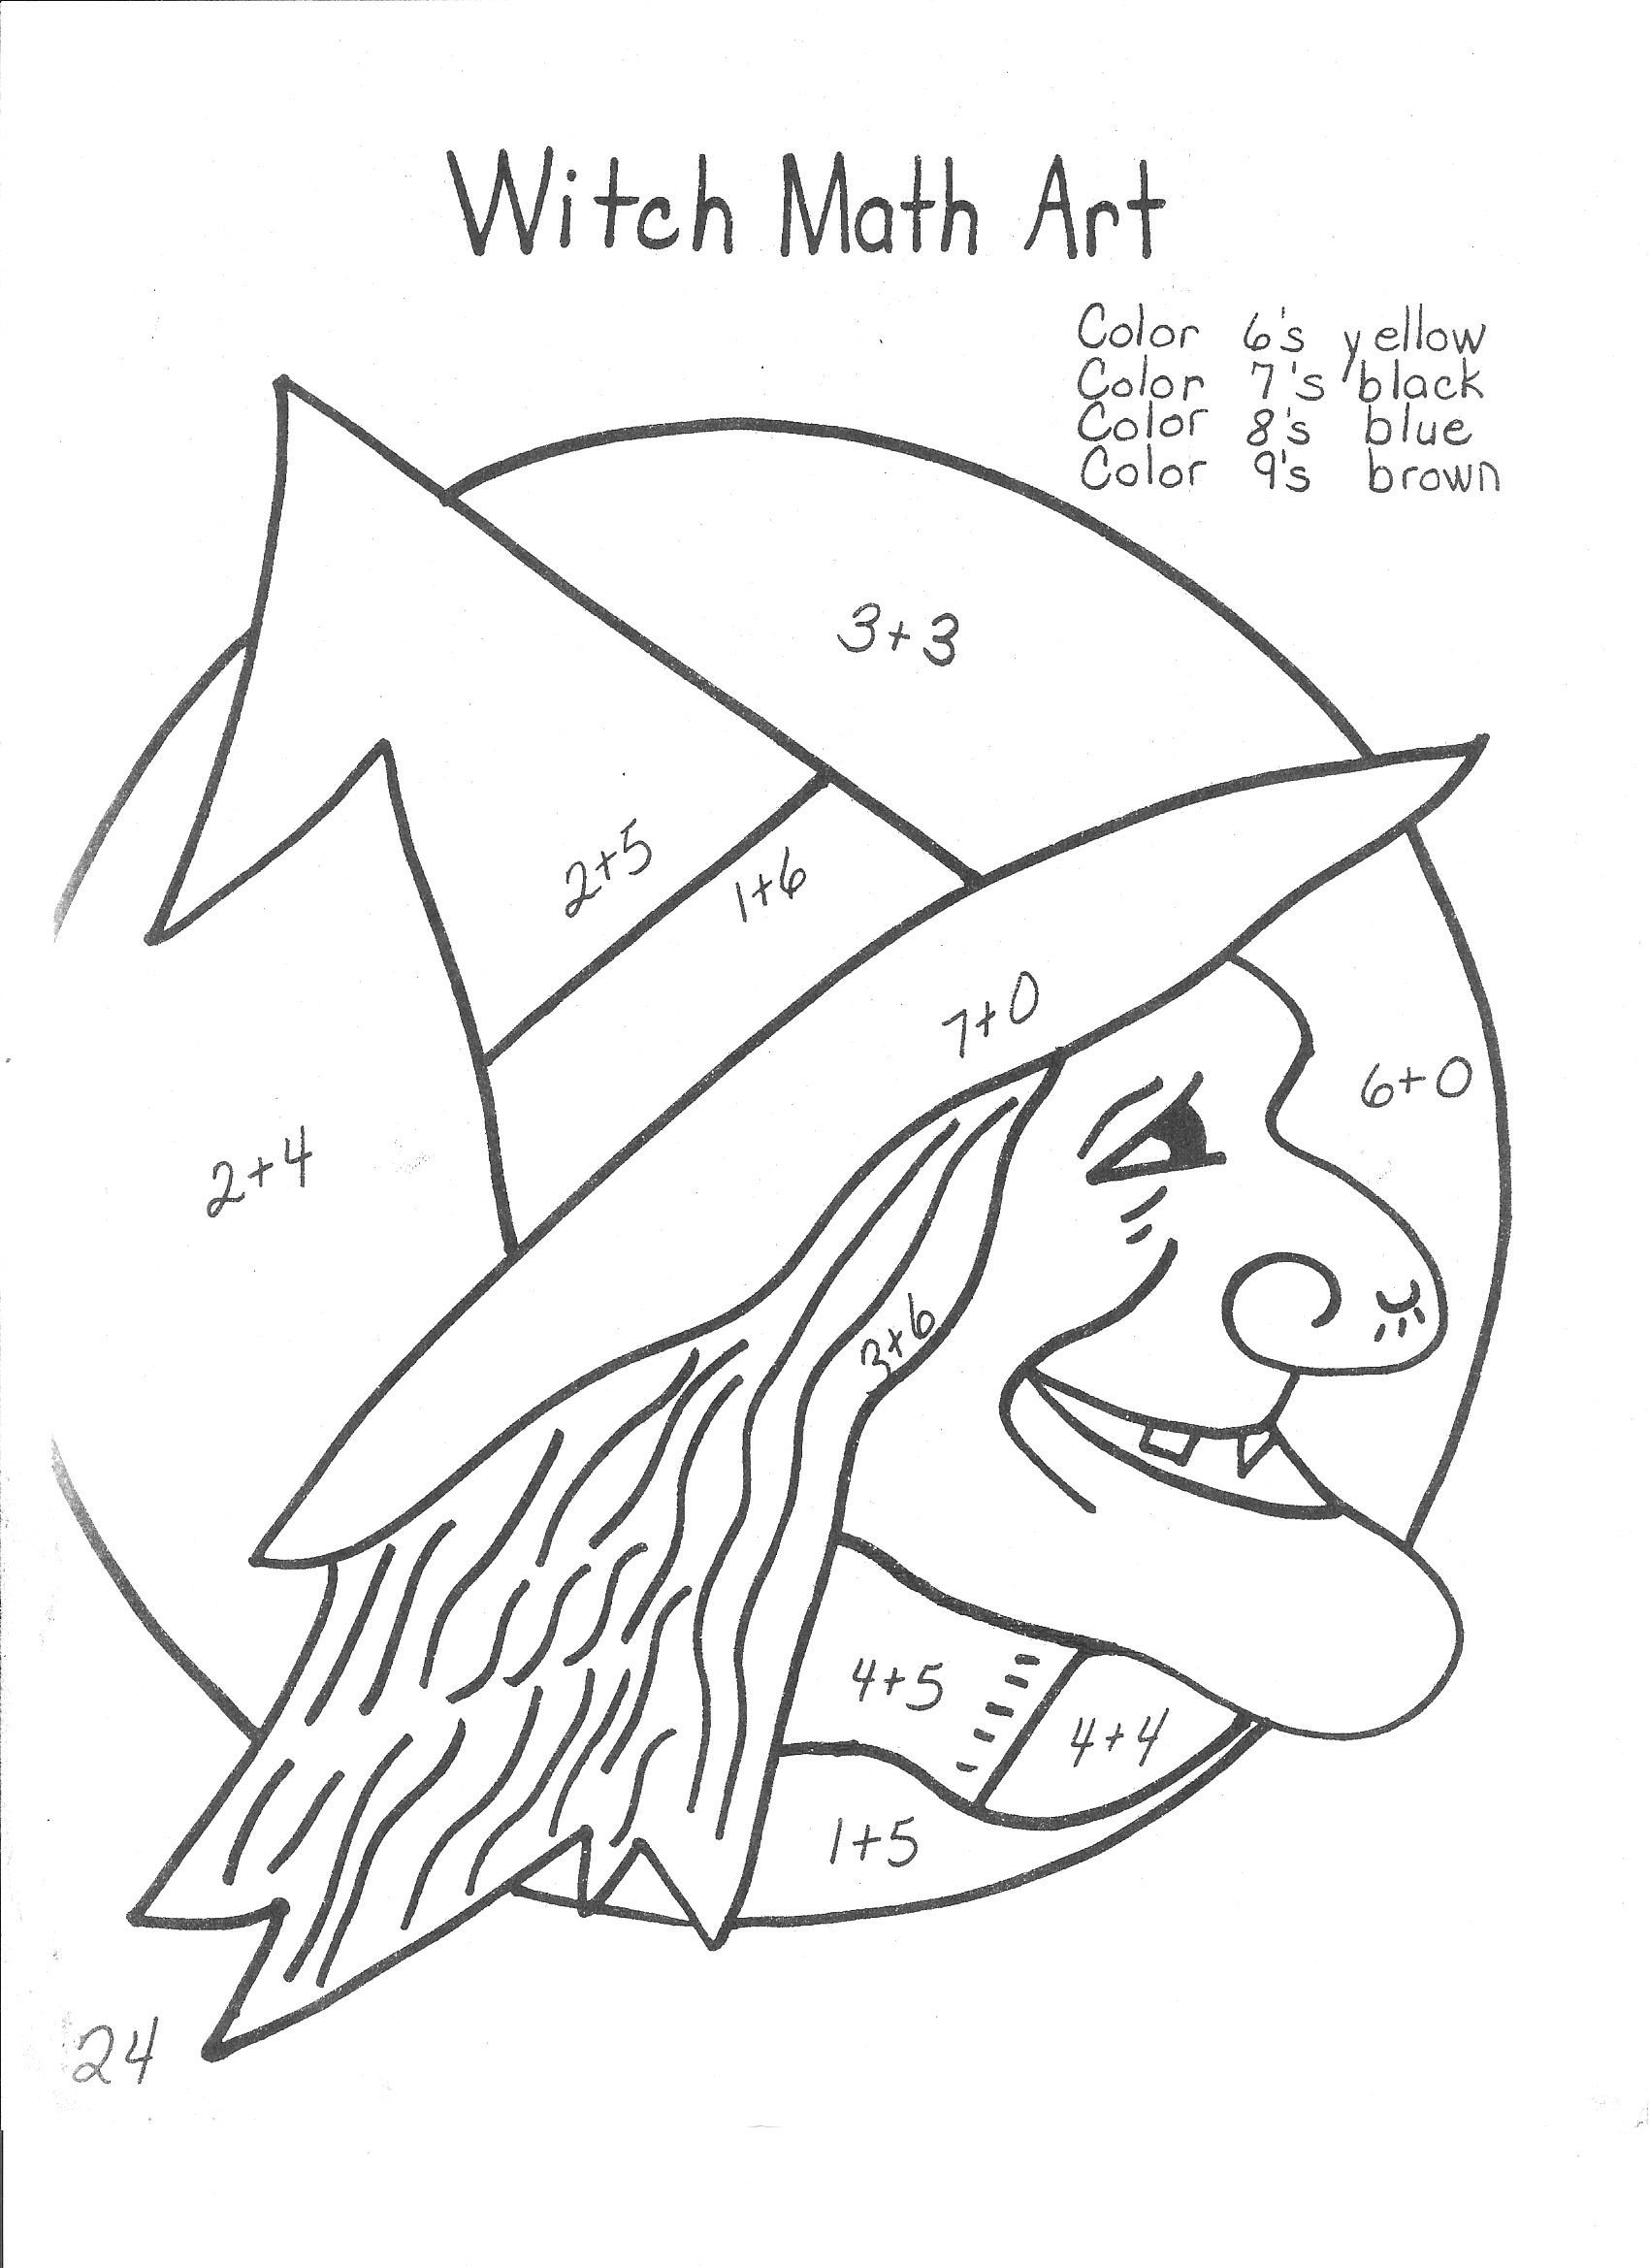 witches 13 days of halloween ideas with images math addition